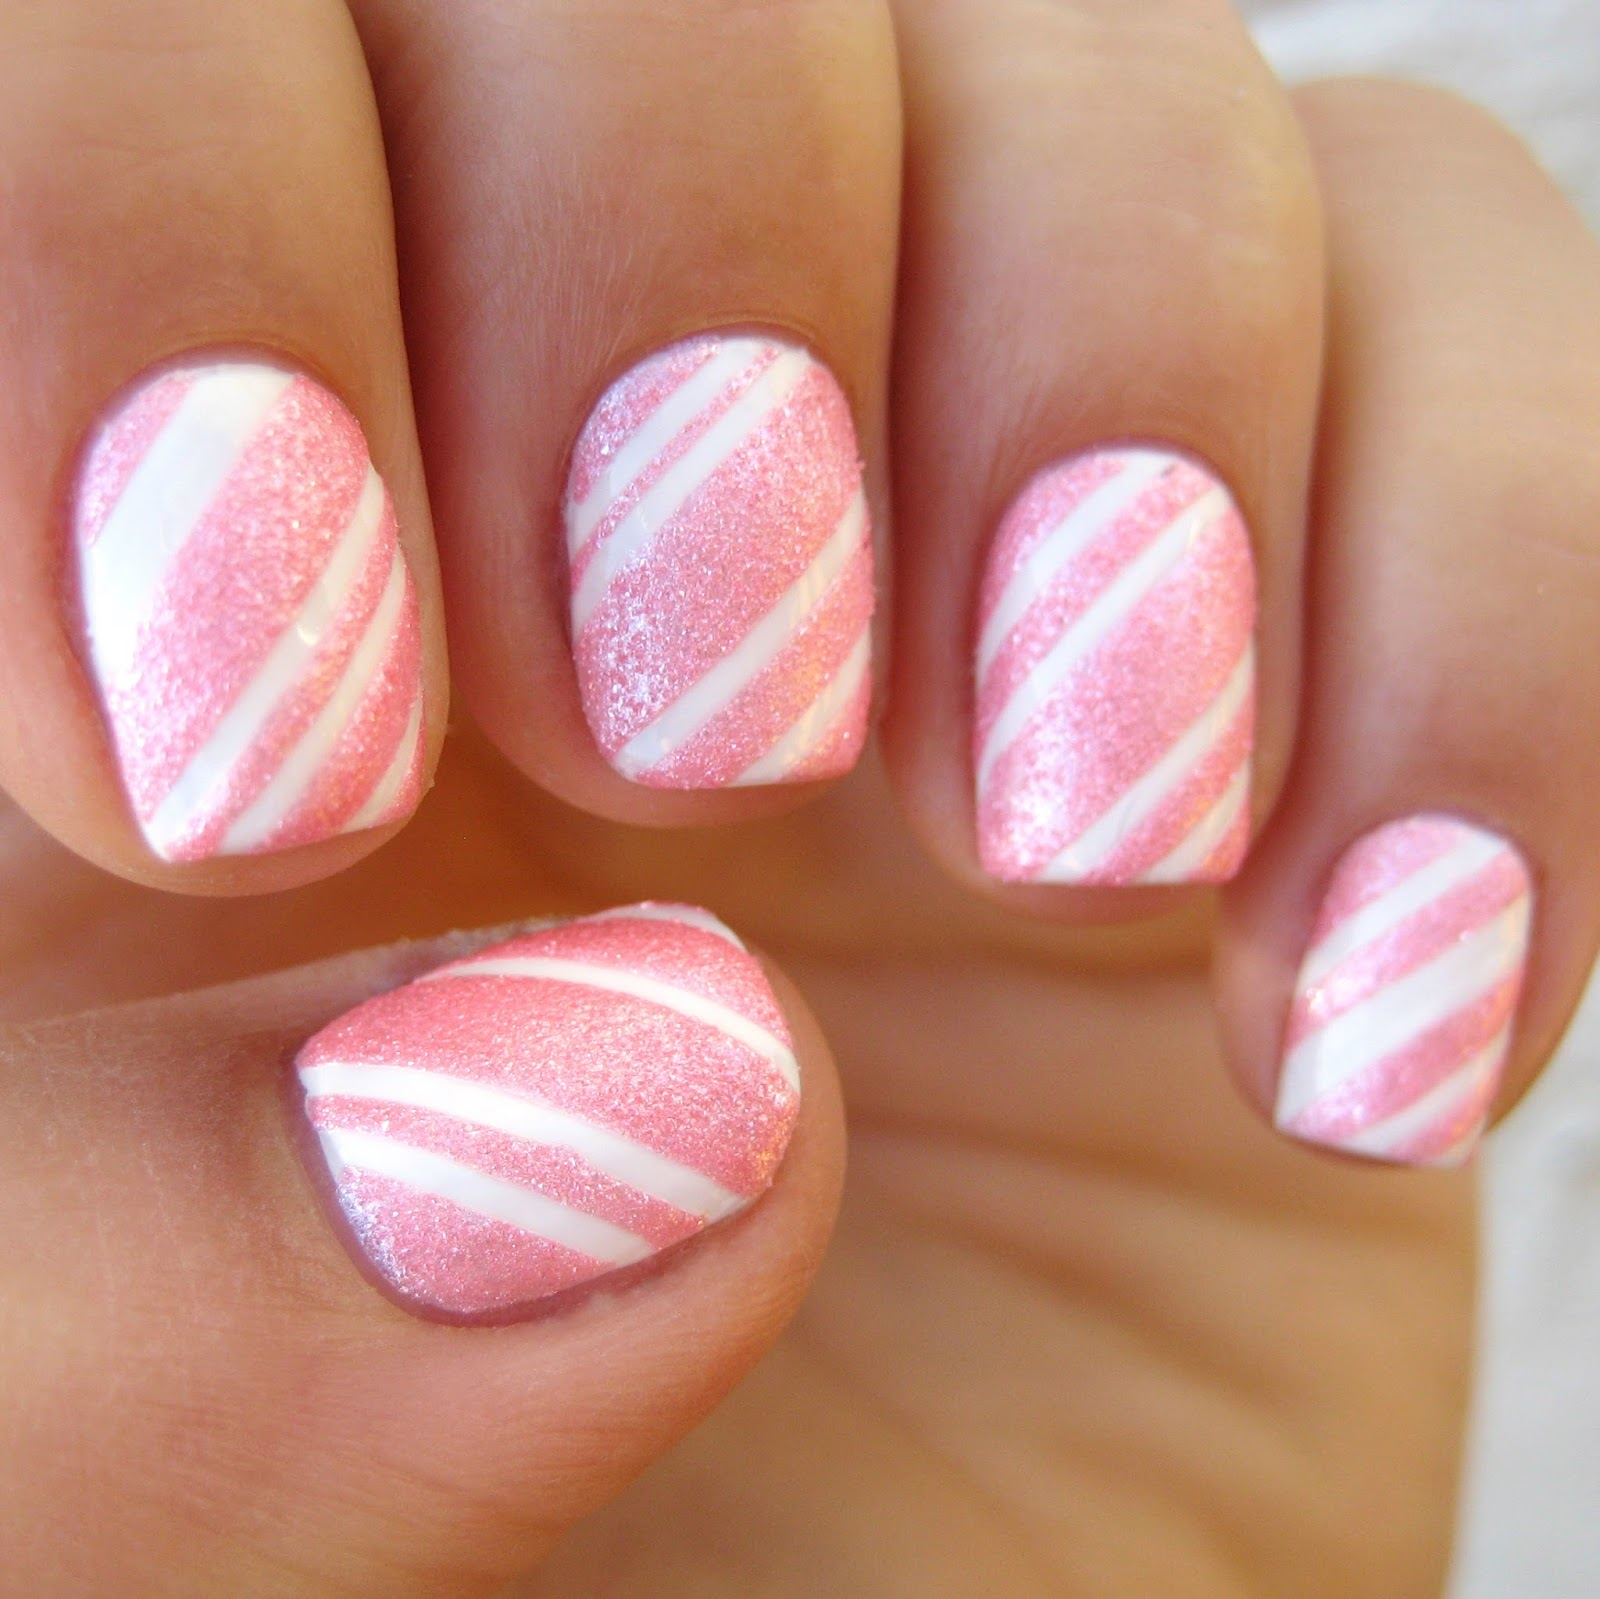 Dahlia Nails: Candyfloss Candy Canes